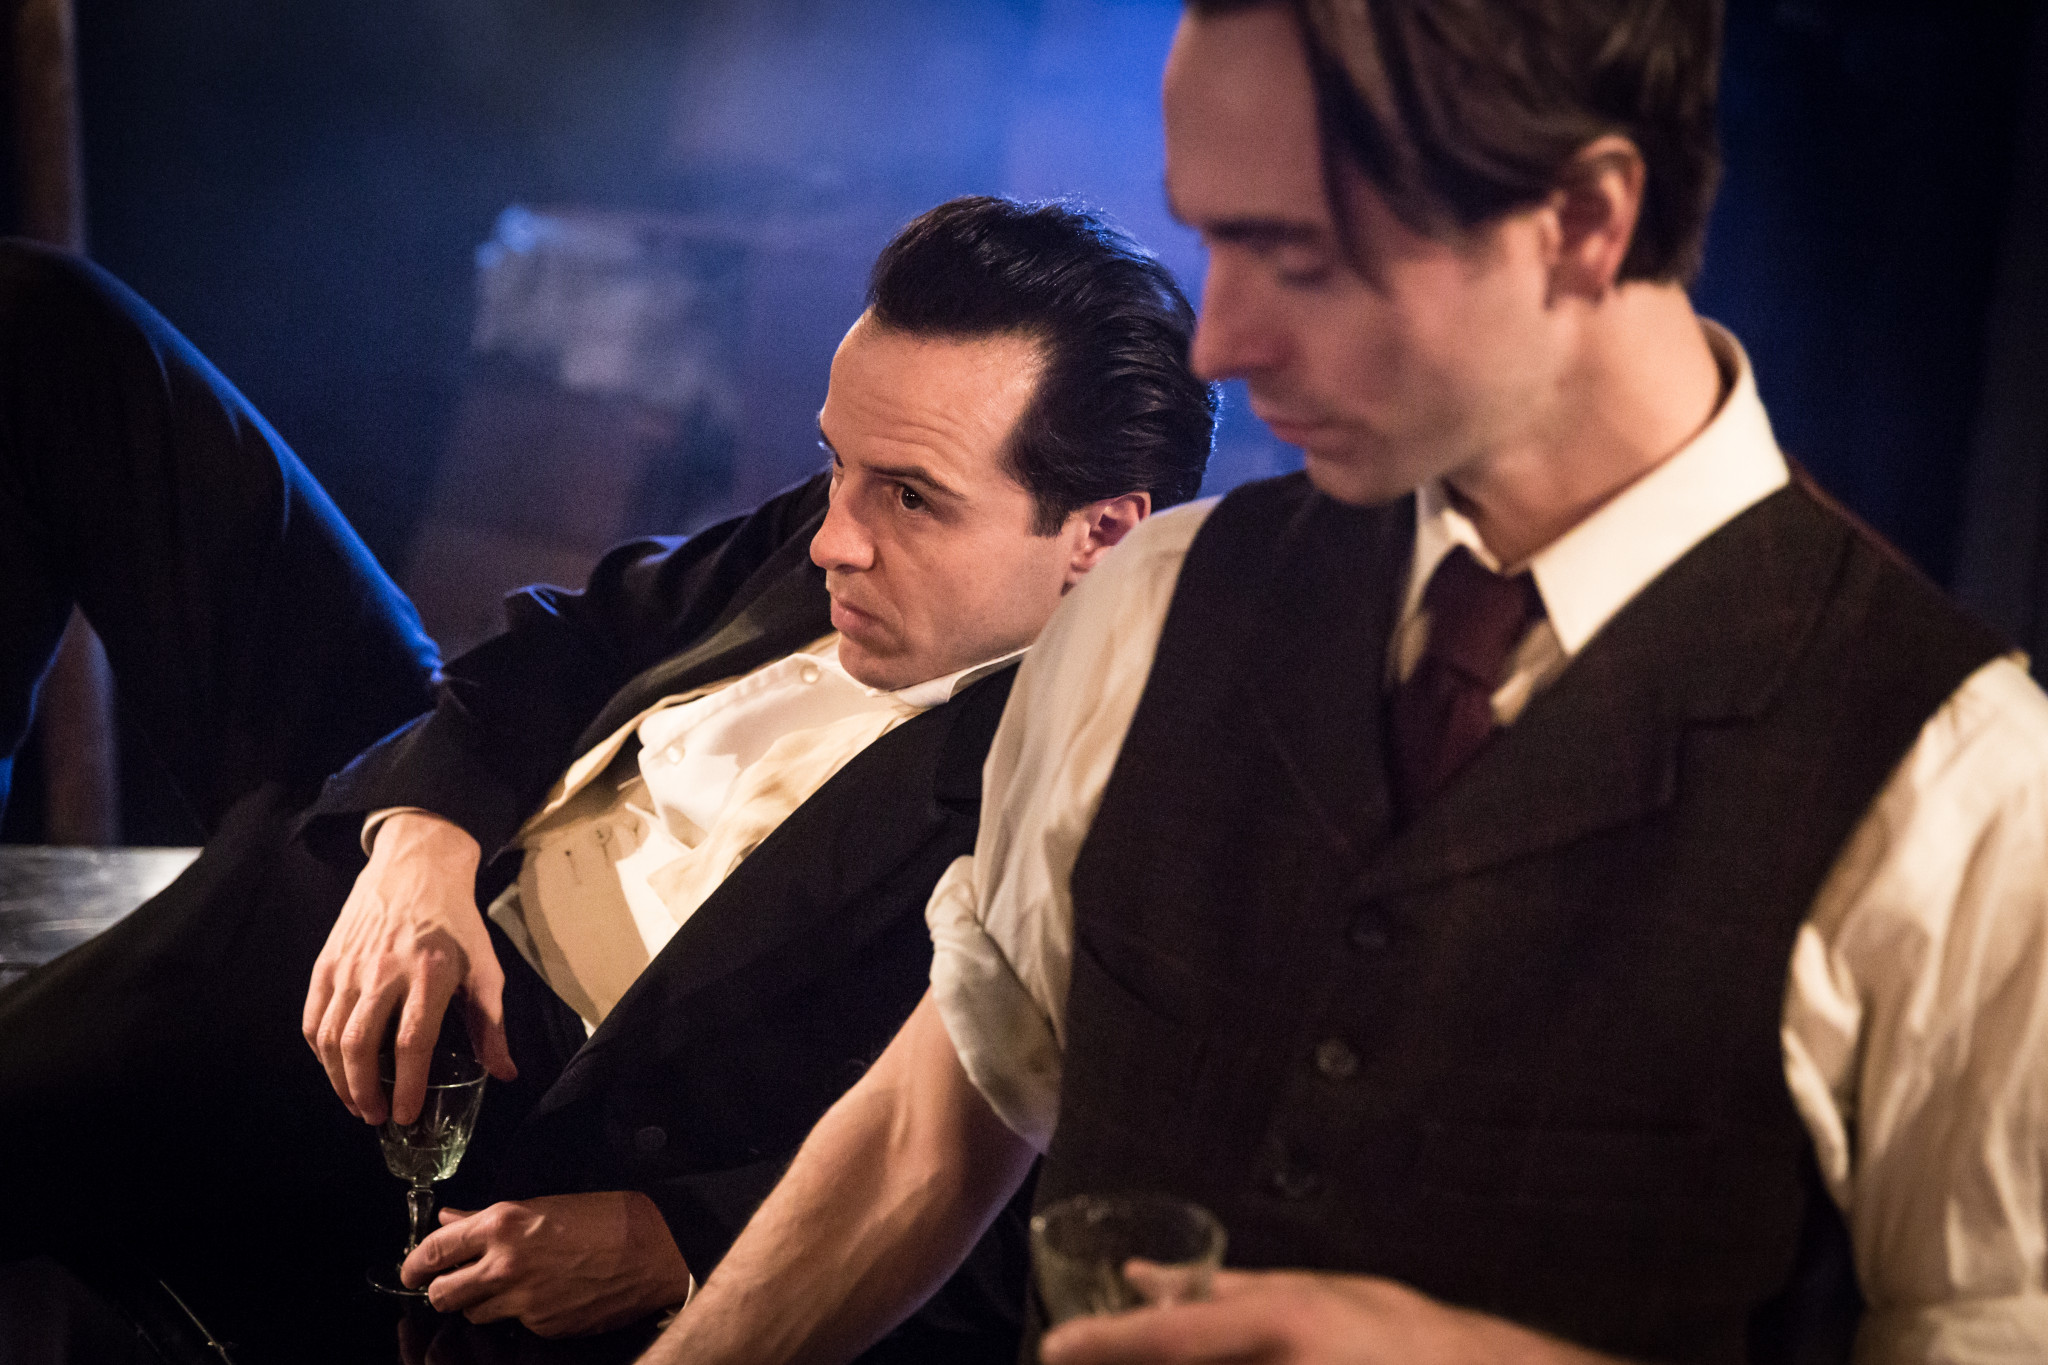 The-Dazzle-at-FOUND111.-Andrew-Scott-Langley-and-David-Dawson-Homer.-Photo-credit-Marc-Brenner-67